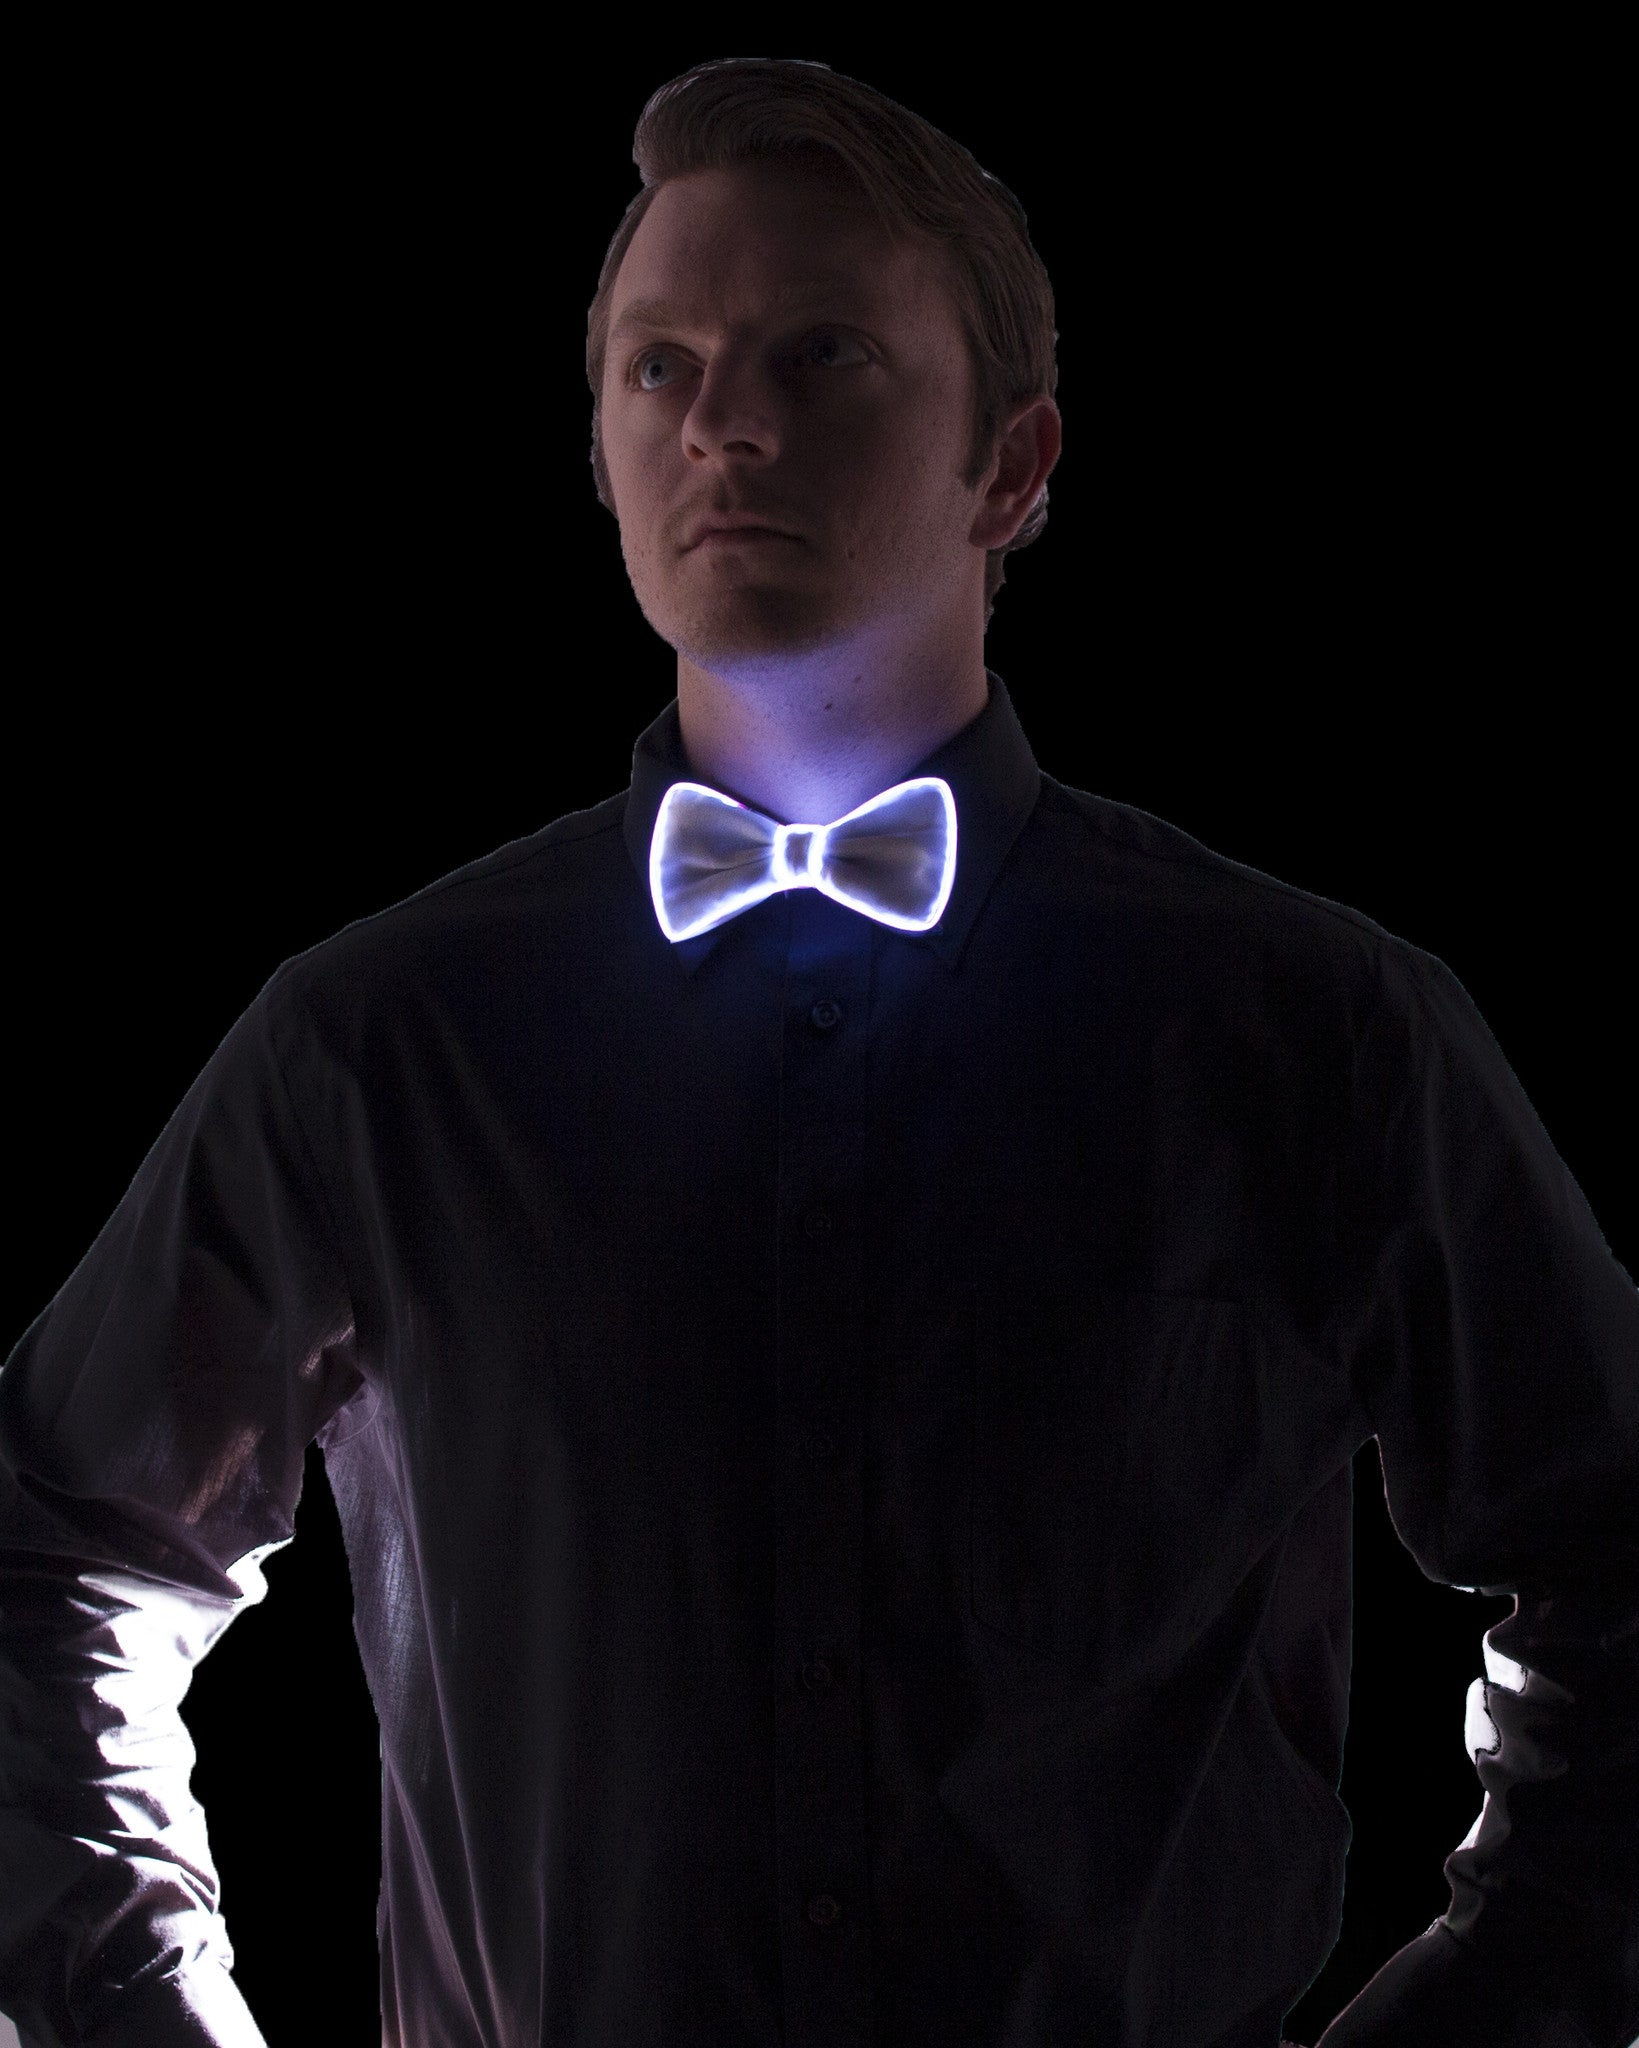 White Light Up Bow Tie - Electric Styles | World's Number 1 Light Up Shoe Store - {product_type}} -  - 9